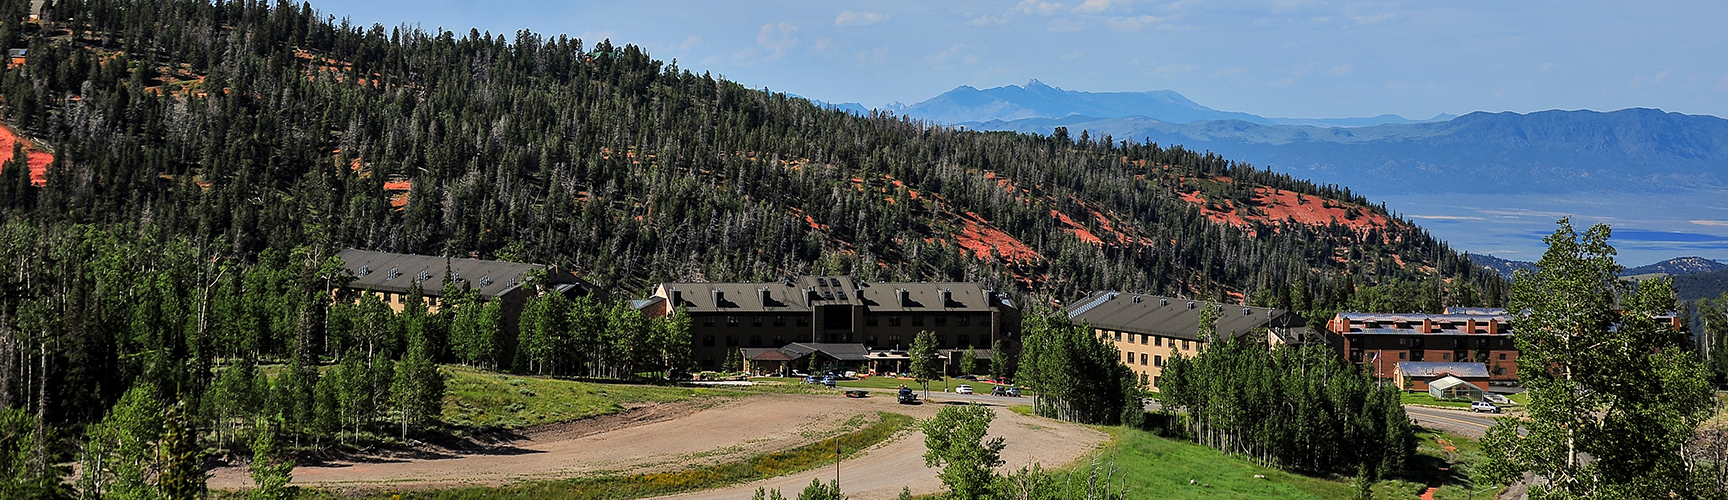 Welcome to Cedar Breaks Lodge & Spa, Book Your Stay!